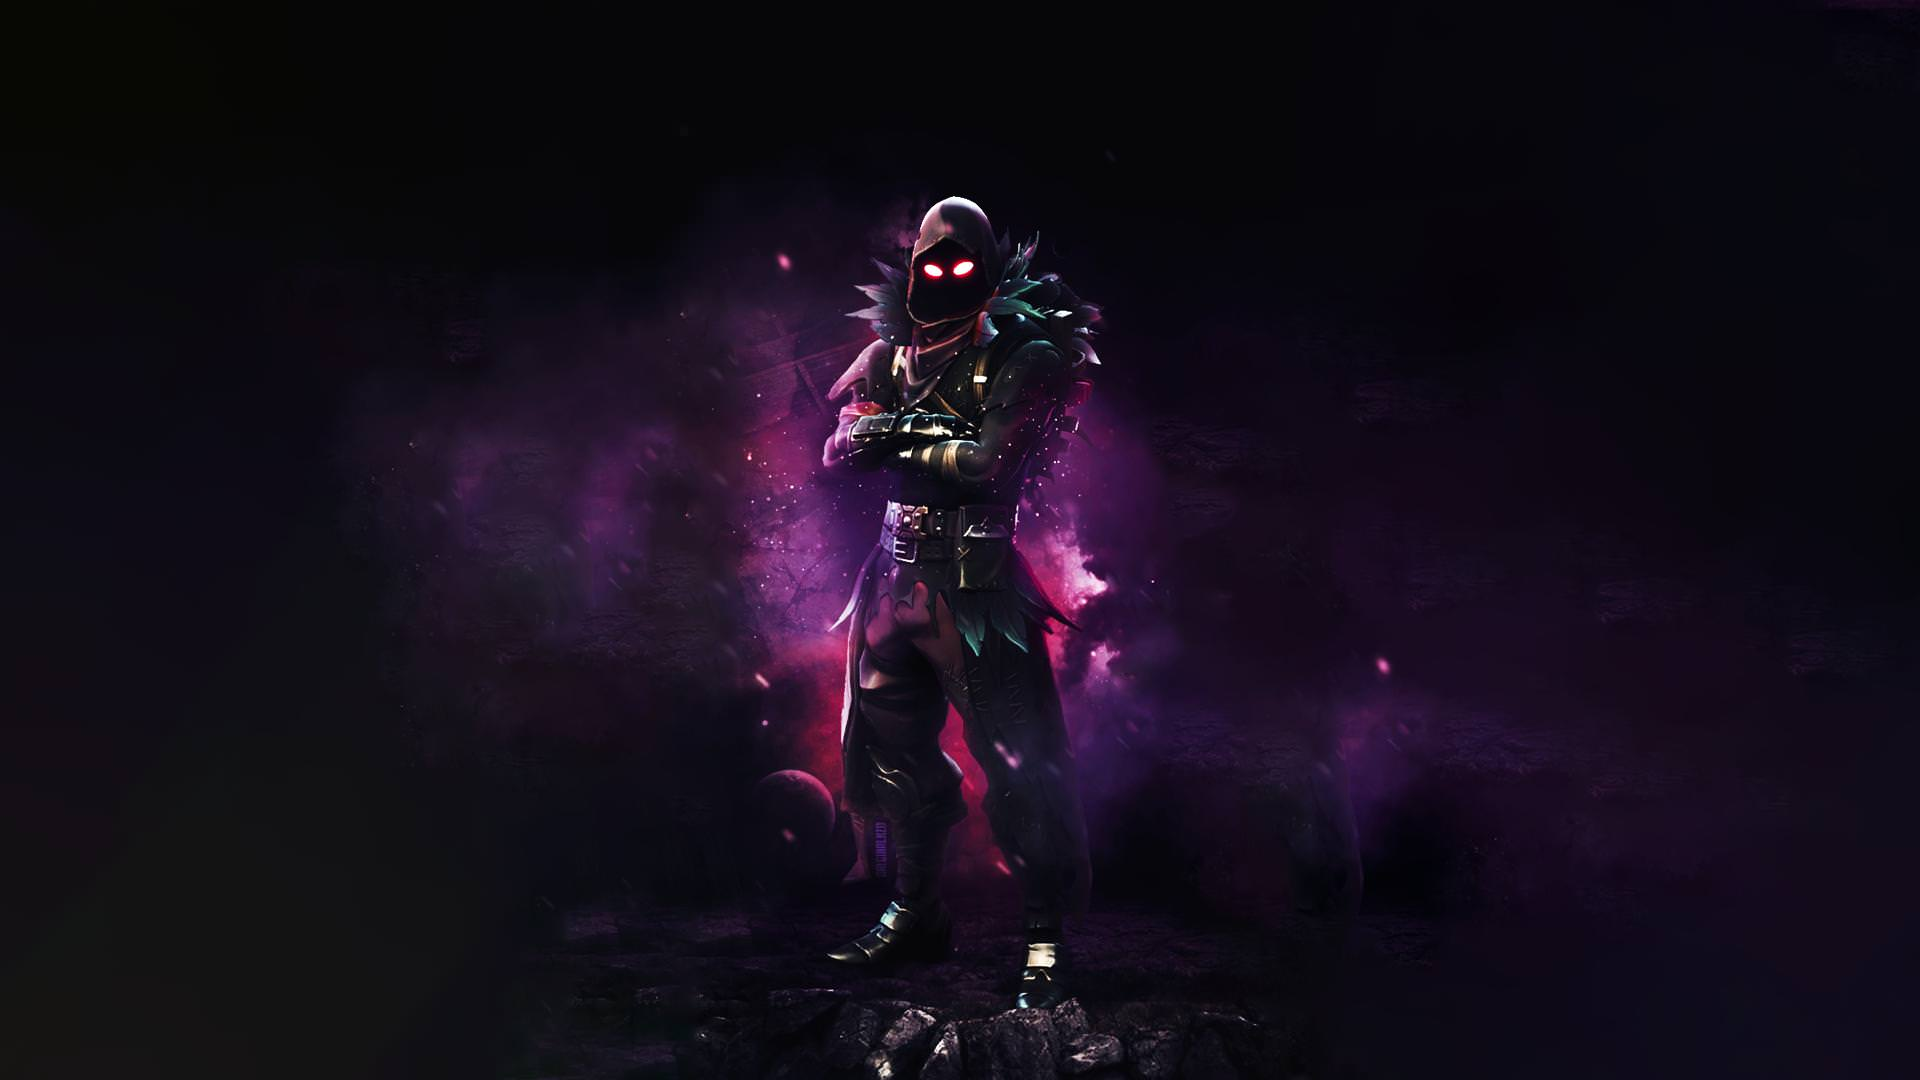 Fortnite Raven Wallpaper HD 4k PC Android IPhone